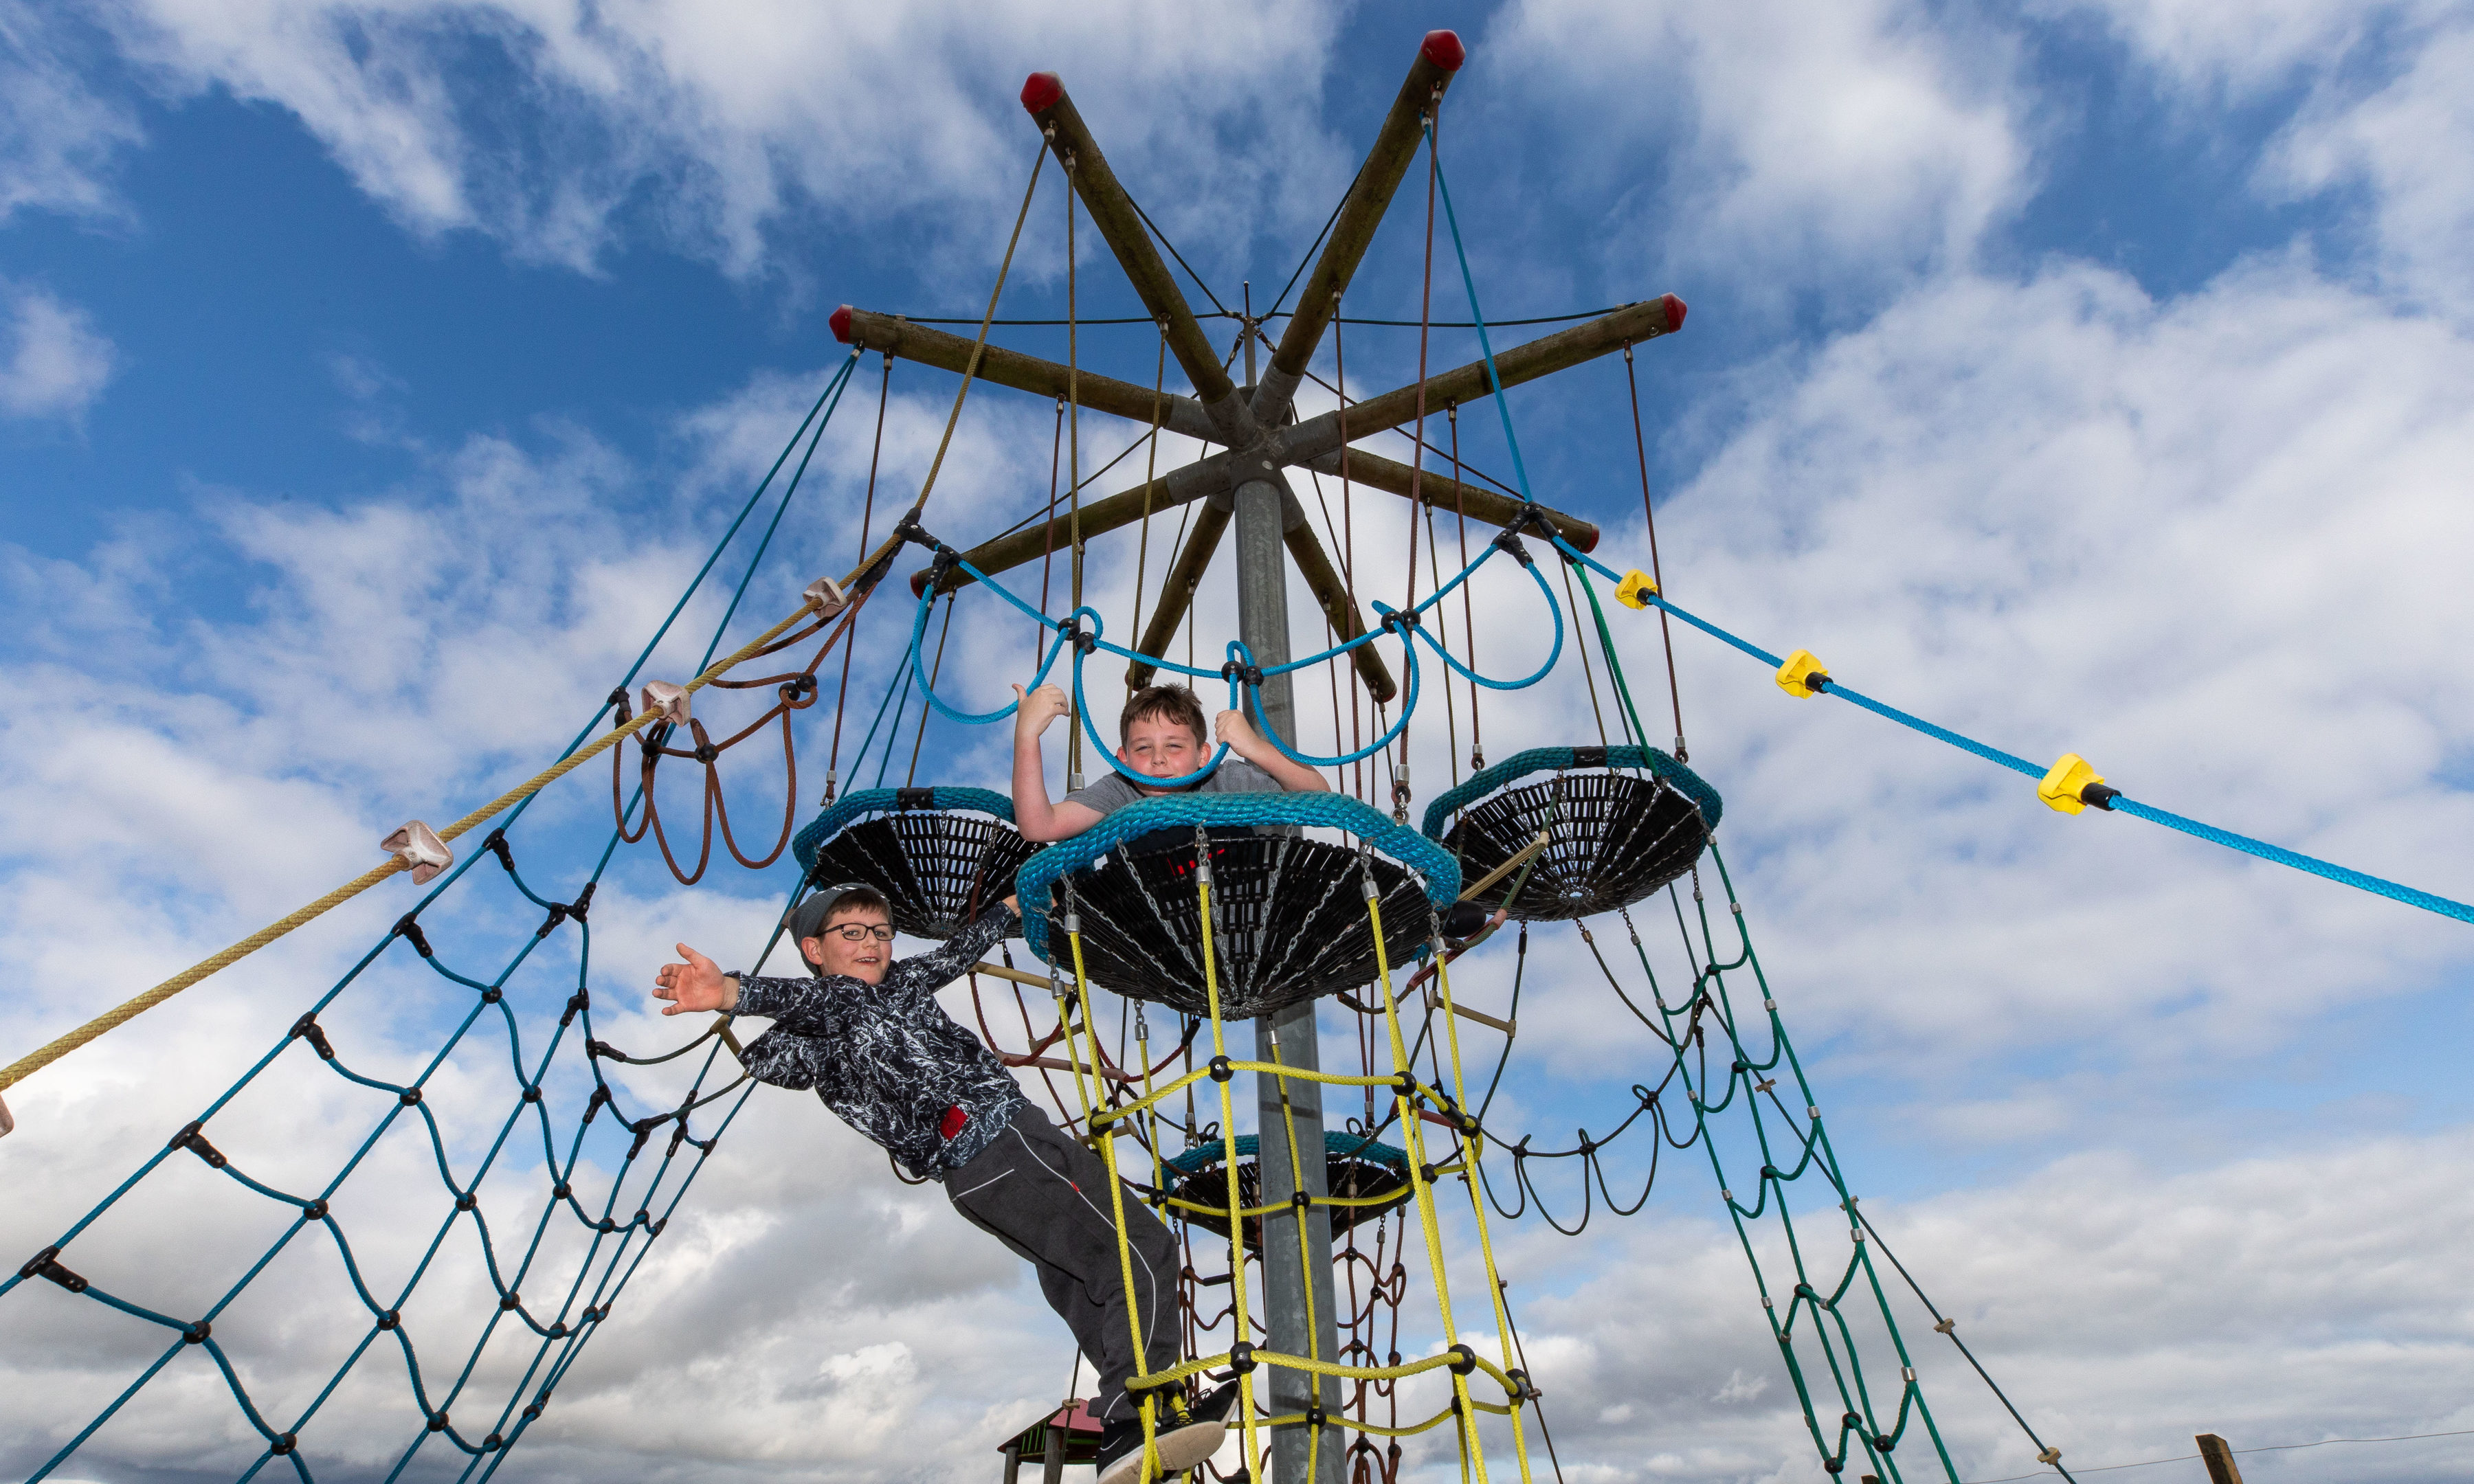 Friends Angus Muirhead (9) and Kyler Graham (9) play on the repaired cargo nets.